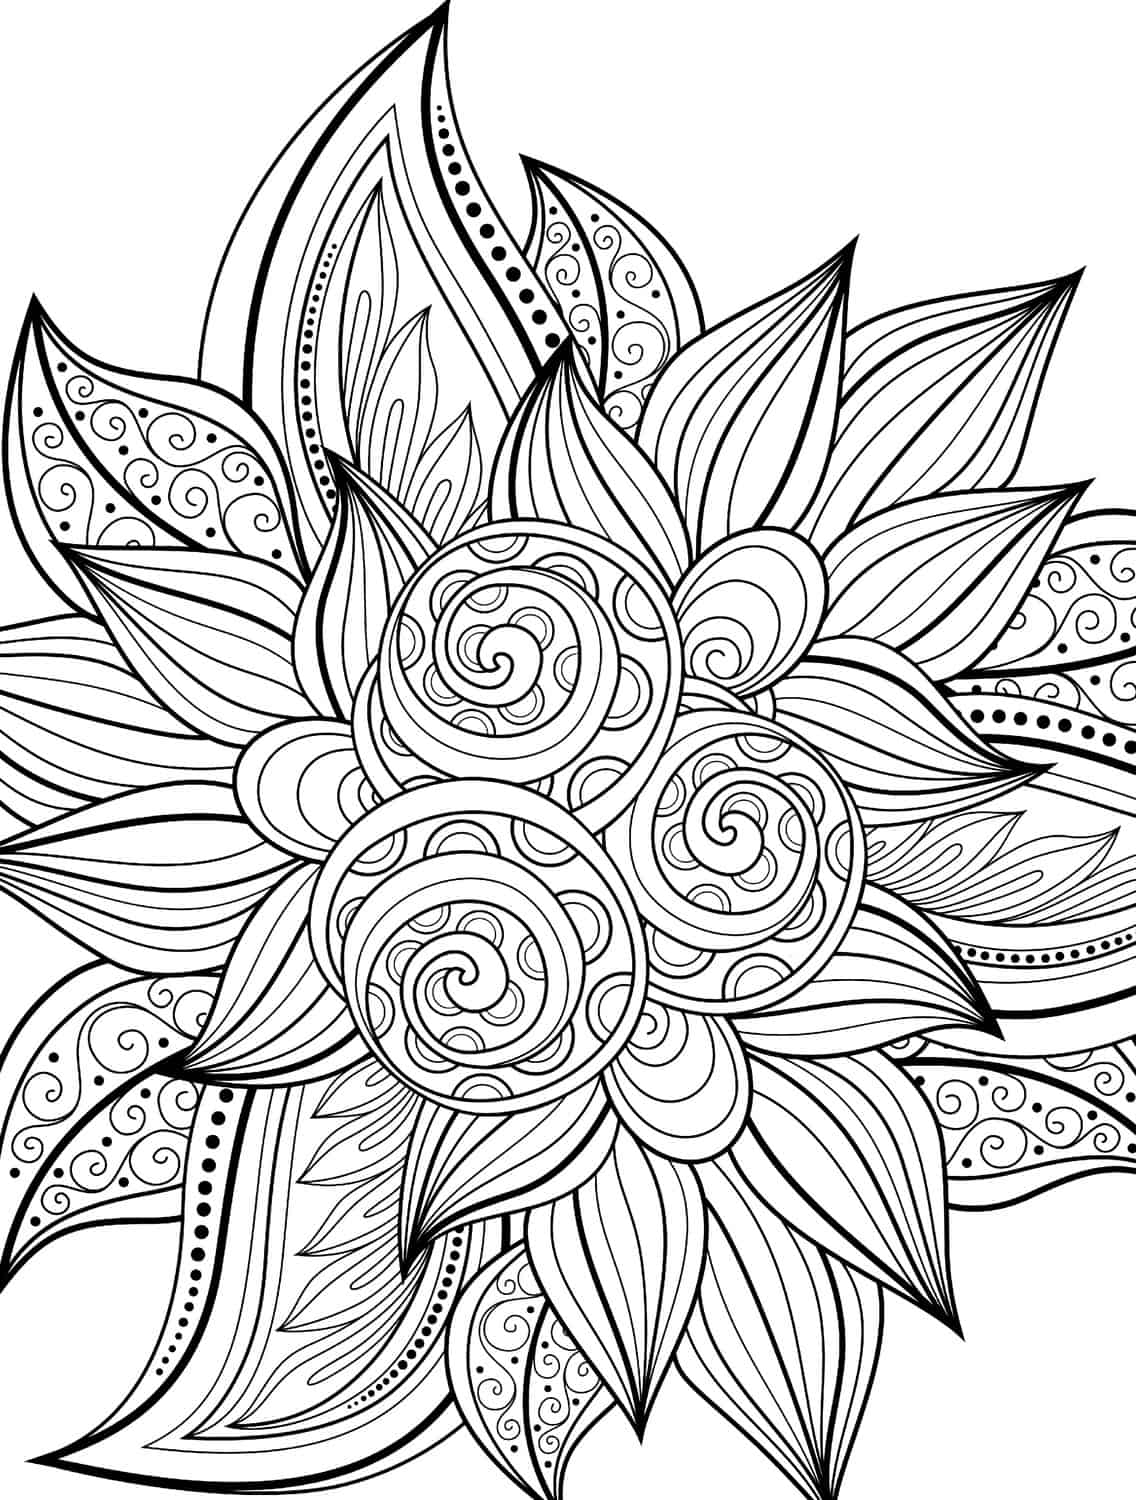 color pages online free online coloring pages for adults creatively crafting color online pages